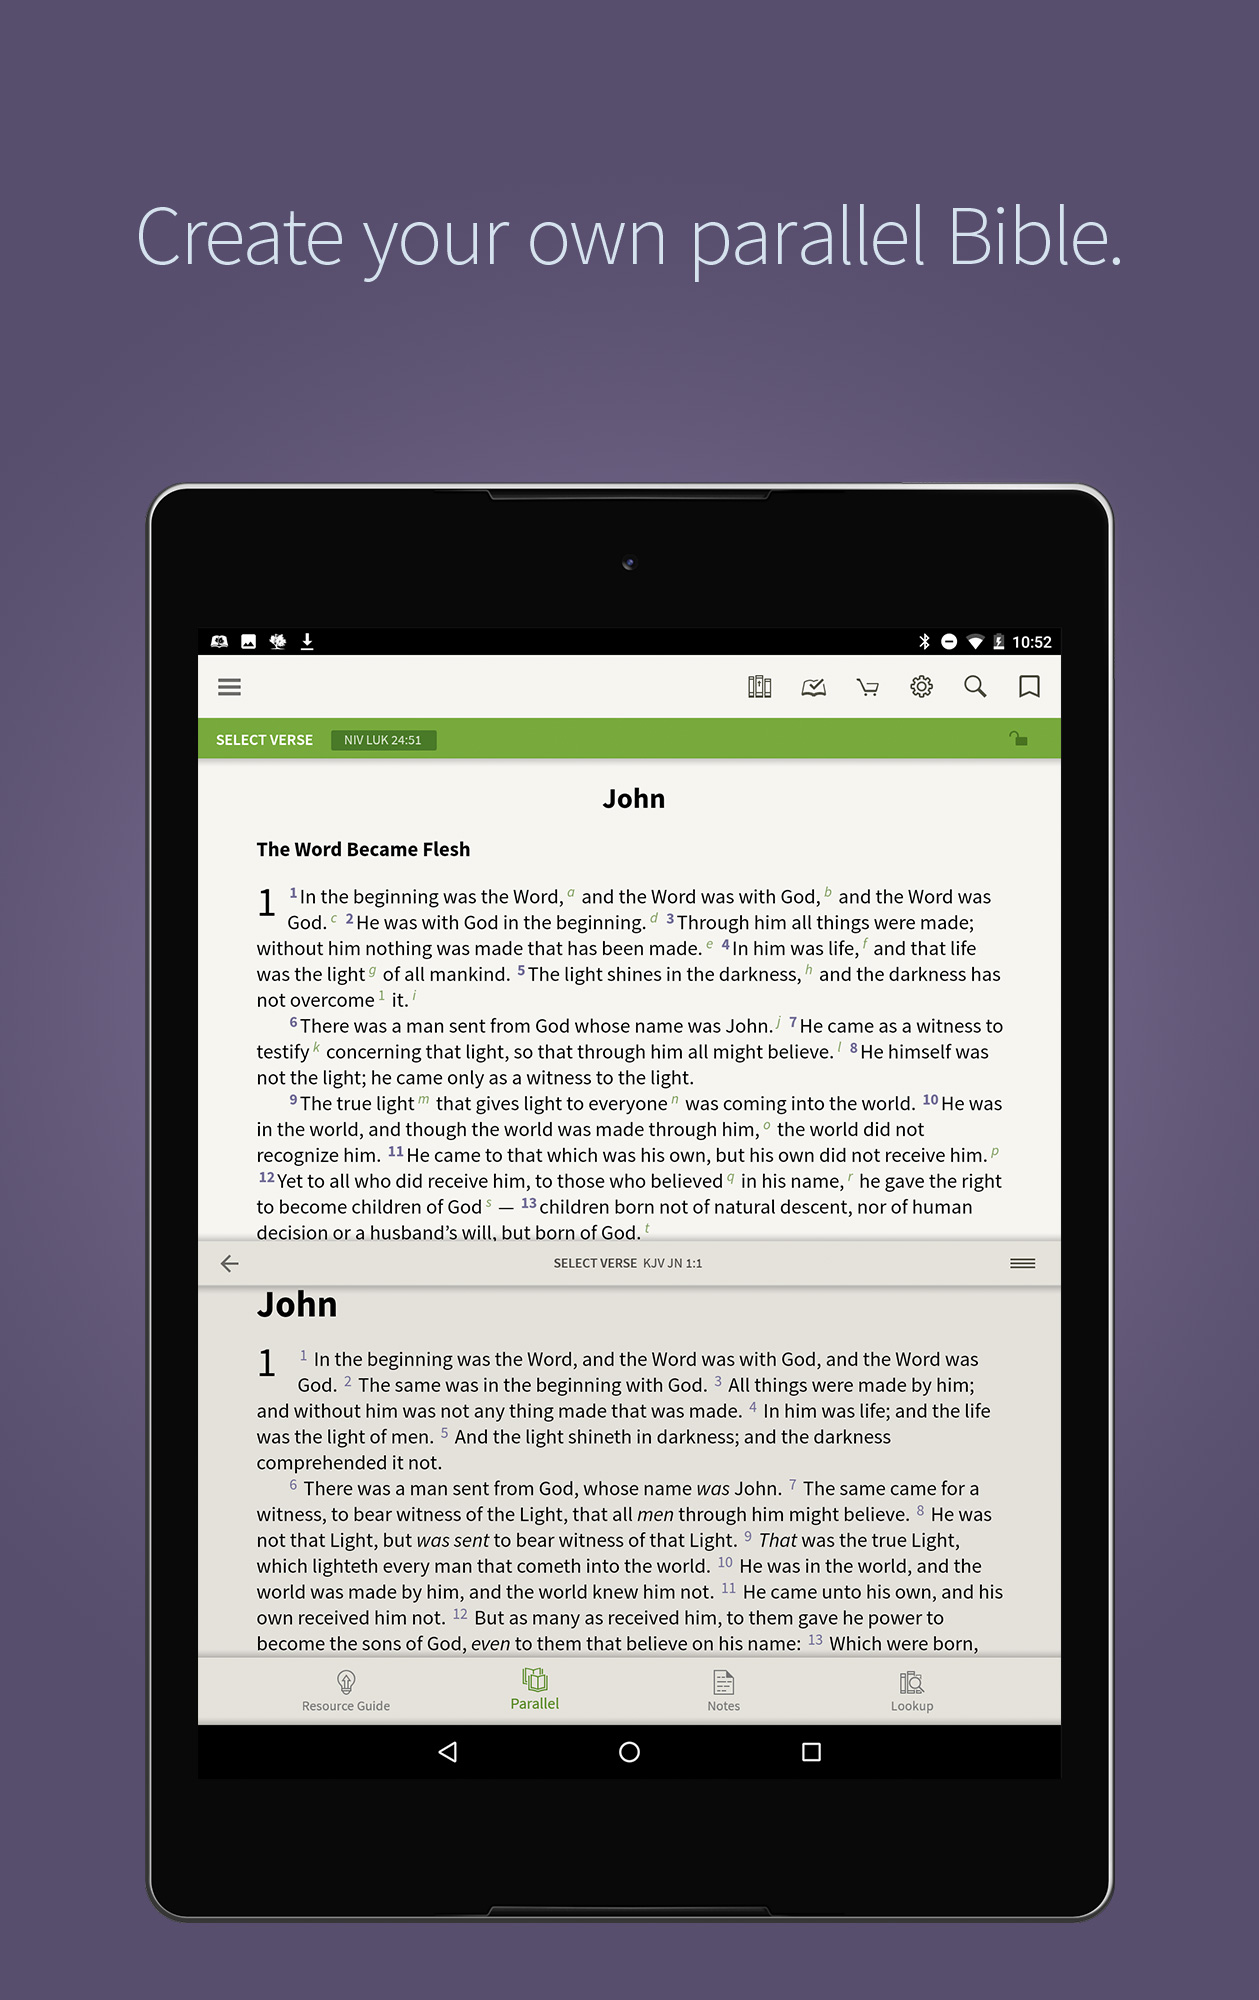 Olive Tree Bible App on Android - Olive Tree Blog